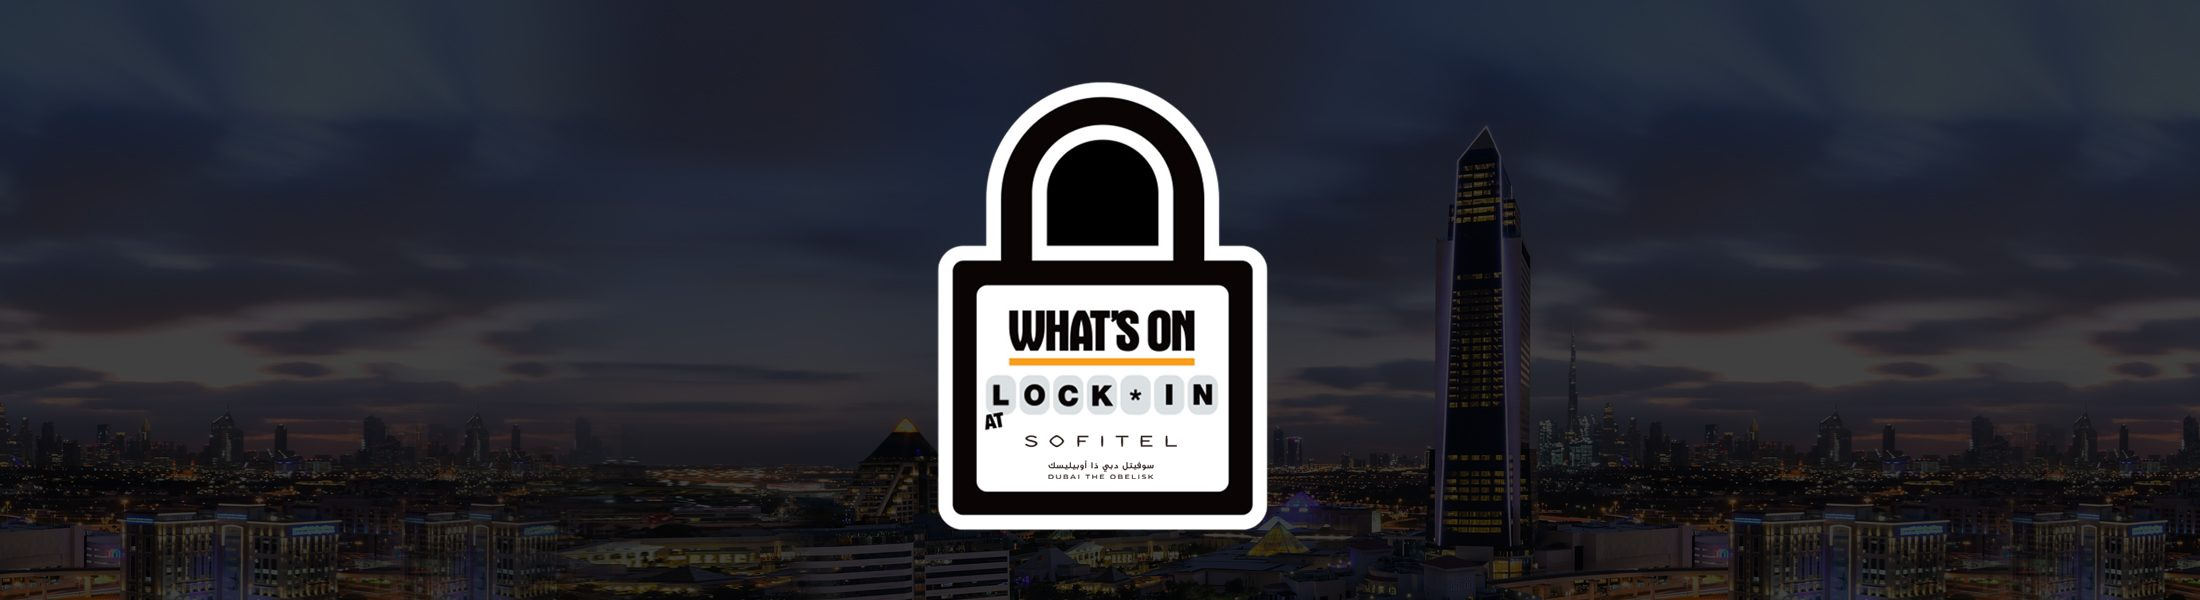 whats-on-lock-in-at-sofitel-dubai-the-obelisk